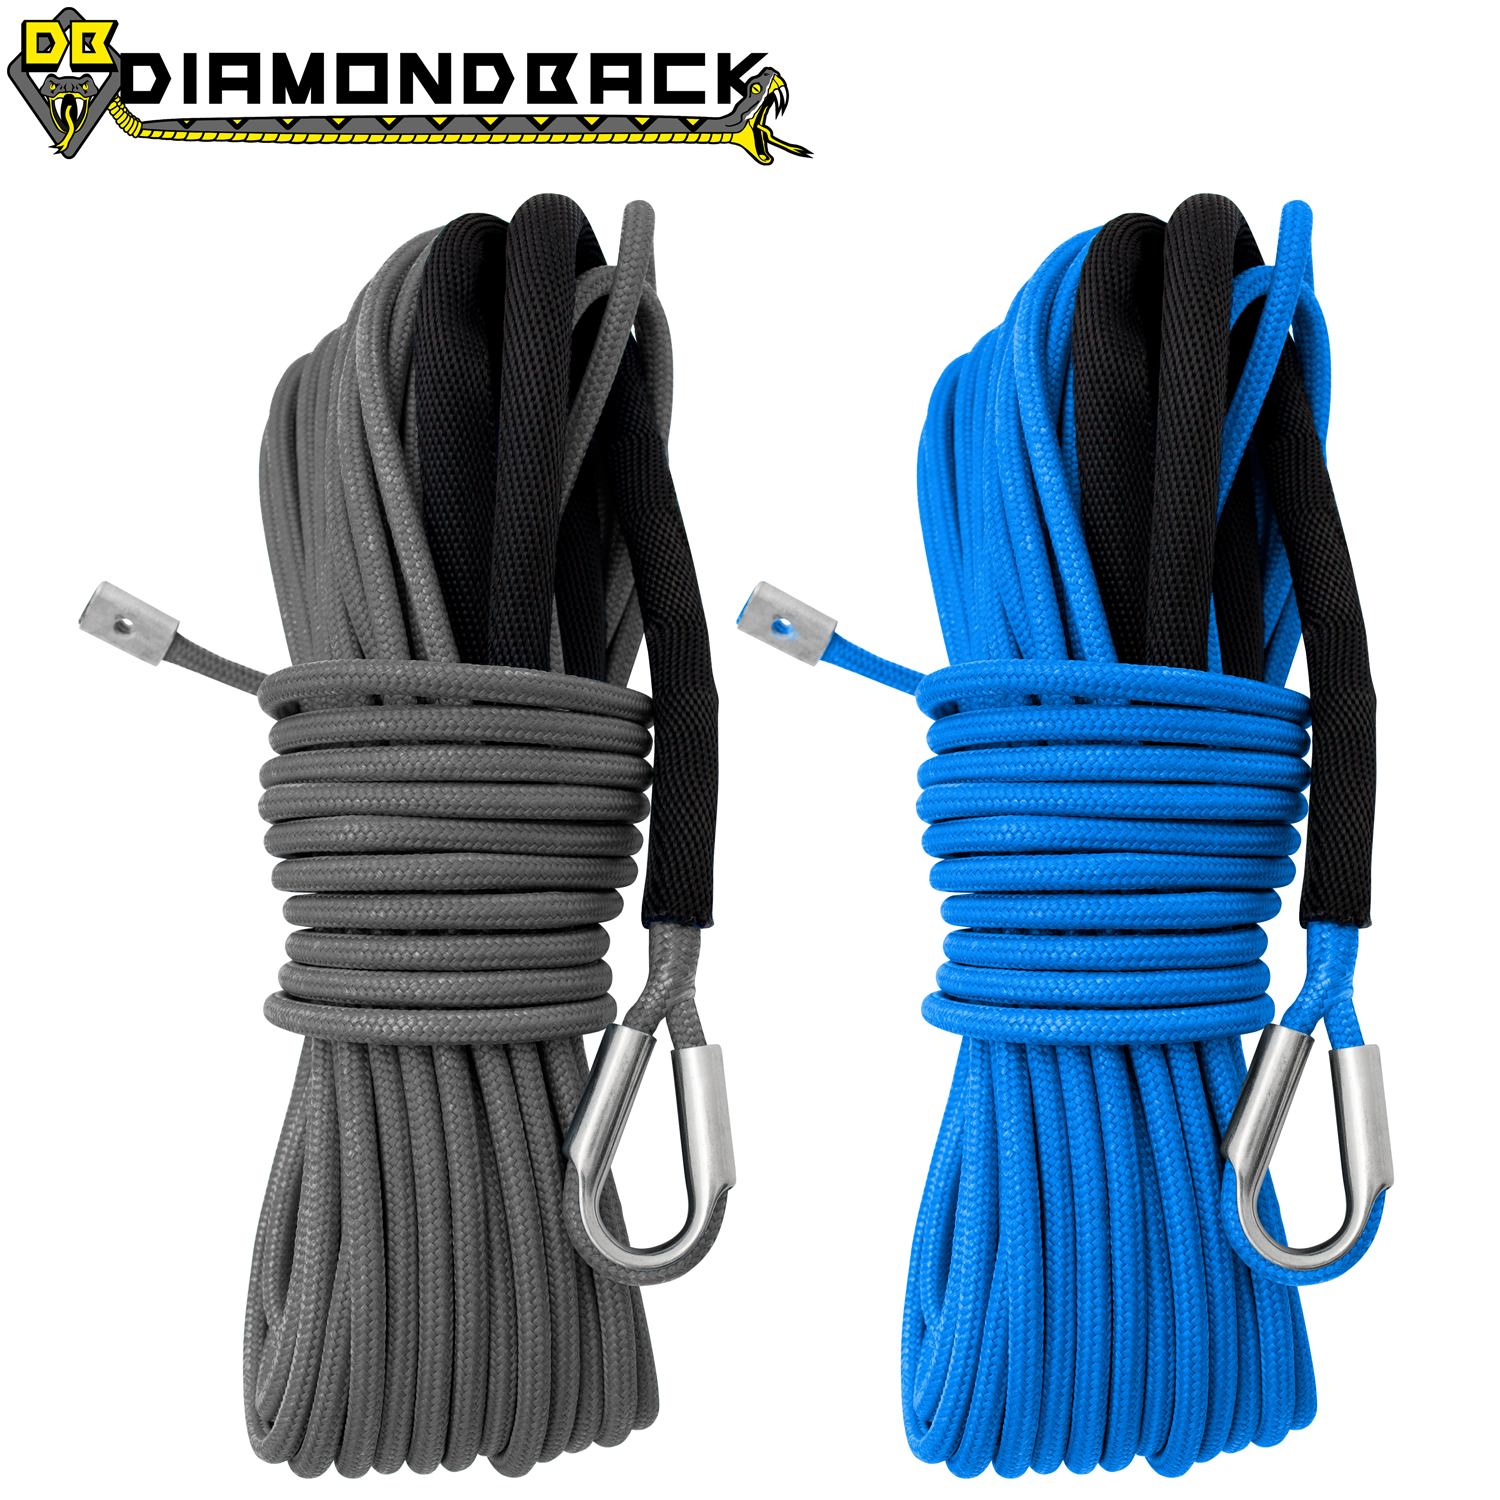 1/2 Diamondback Mainline Winch Rope